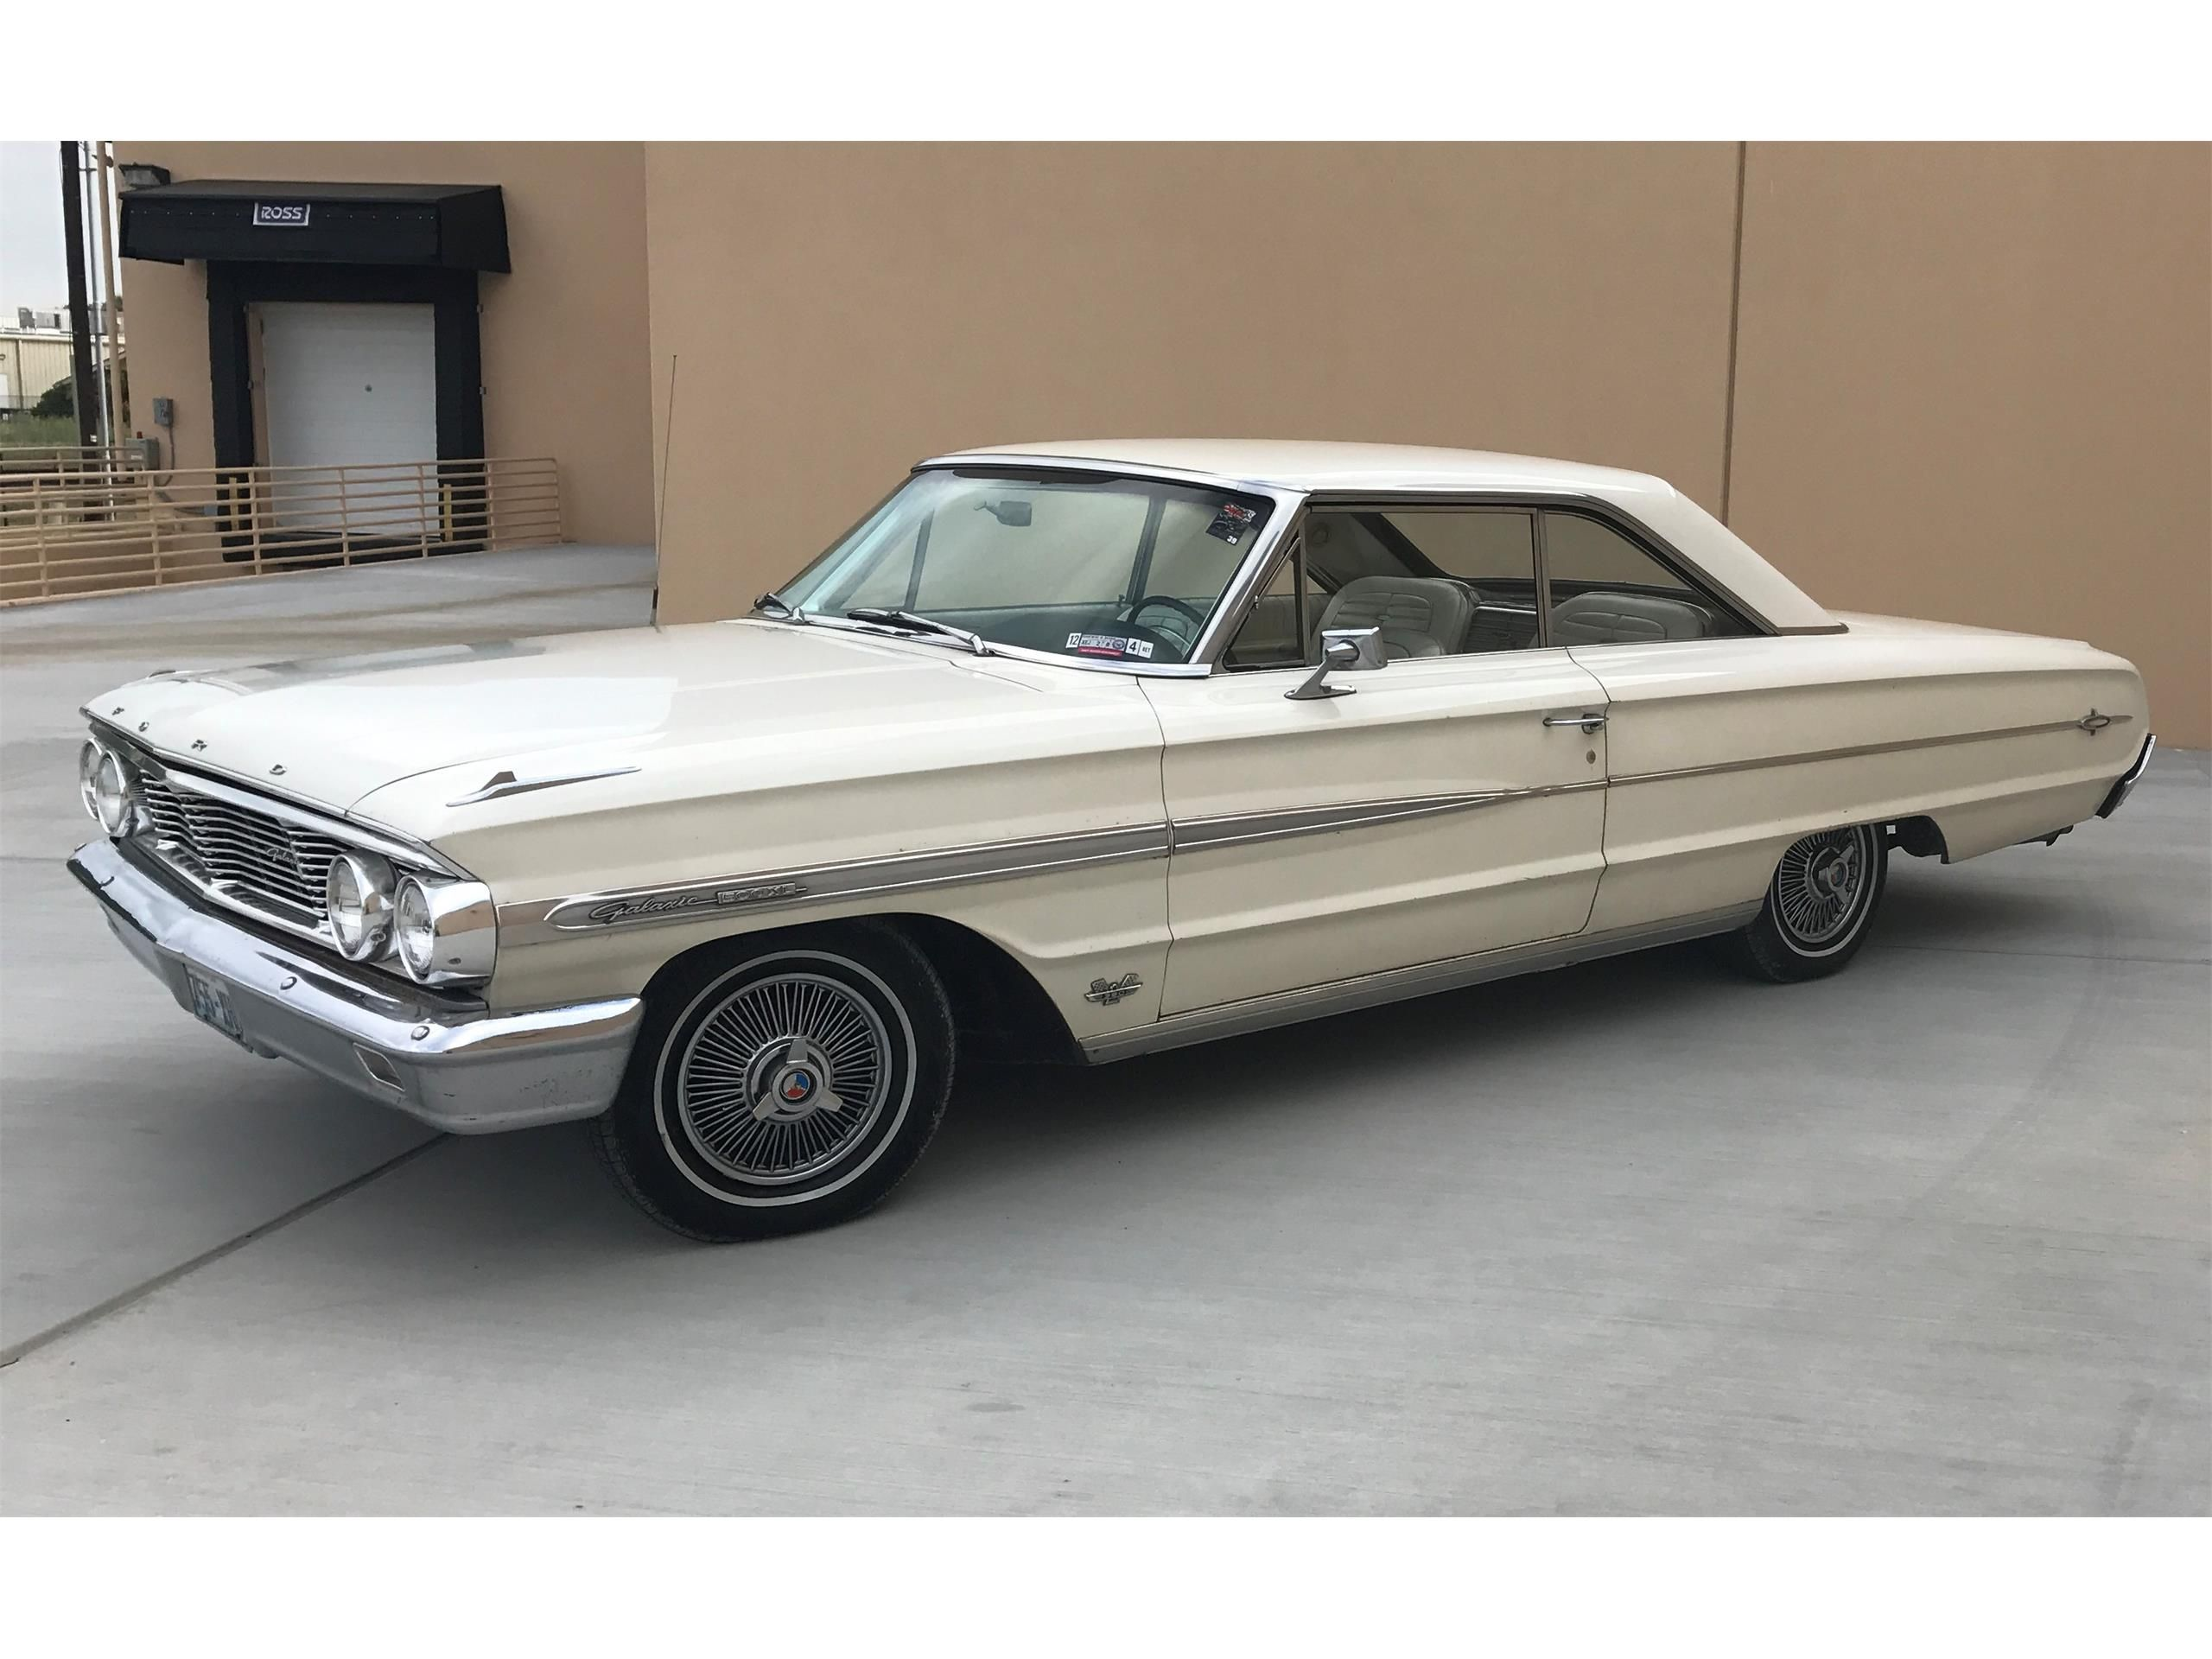 1964 Ford Galaxie 500 Xl For Sale Listing Id Cc 1097534 Classiccars Com Driveyourdream Ford Ford Galaxie Ford Galaxie 500 1964 Ford